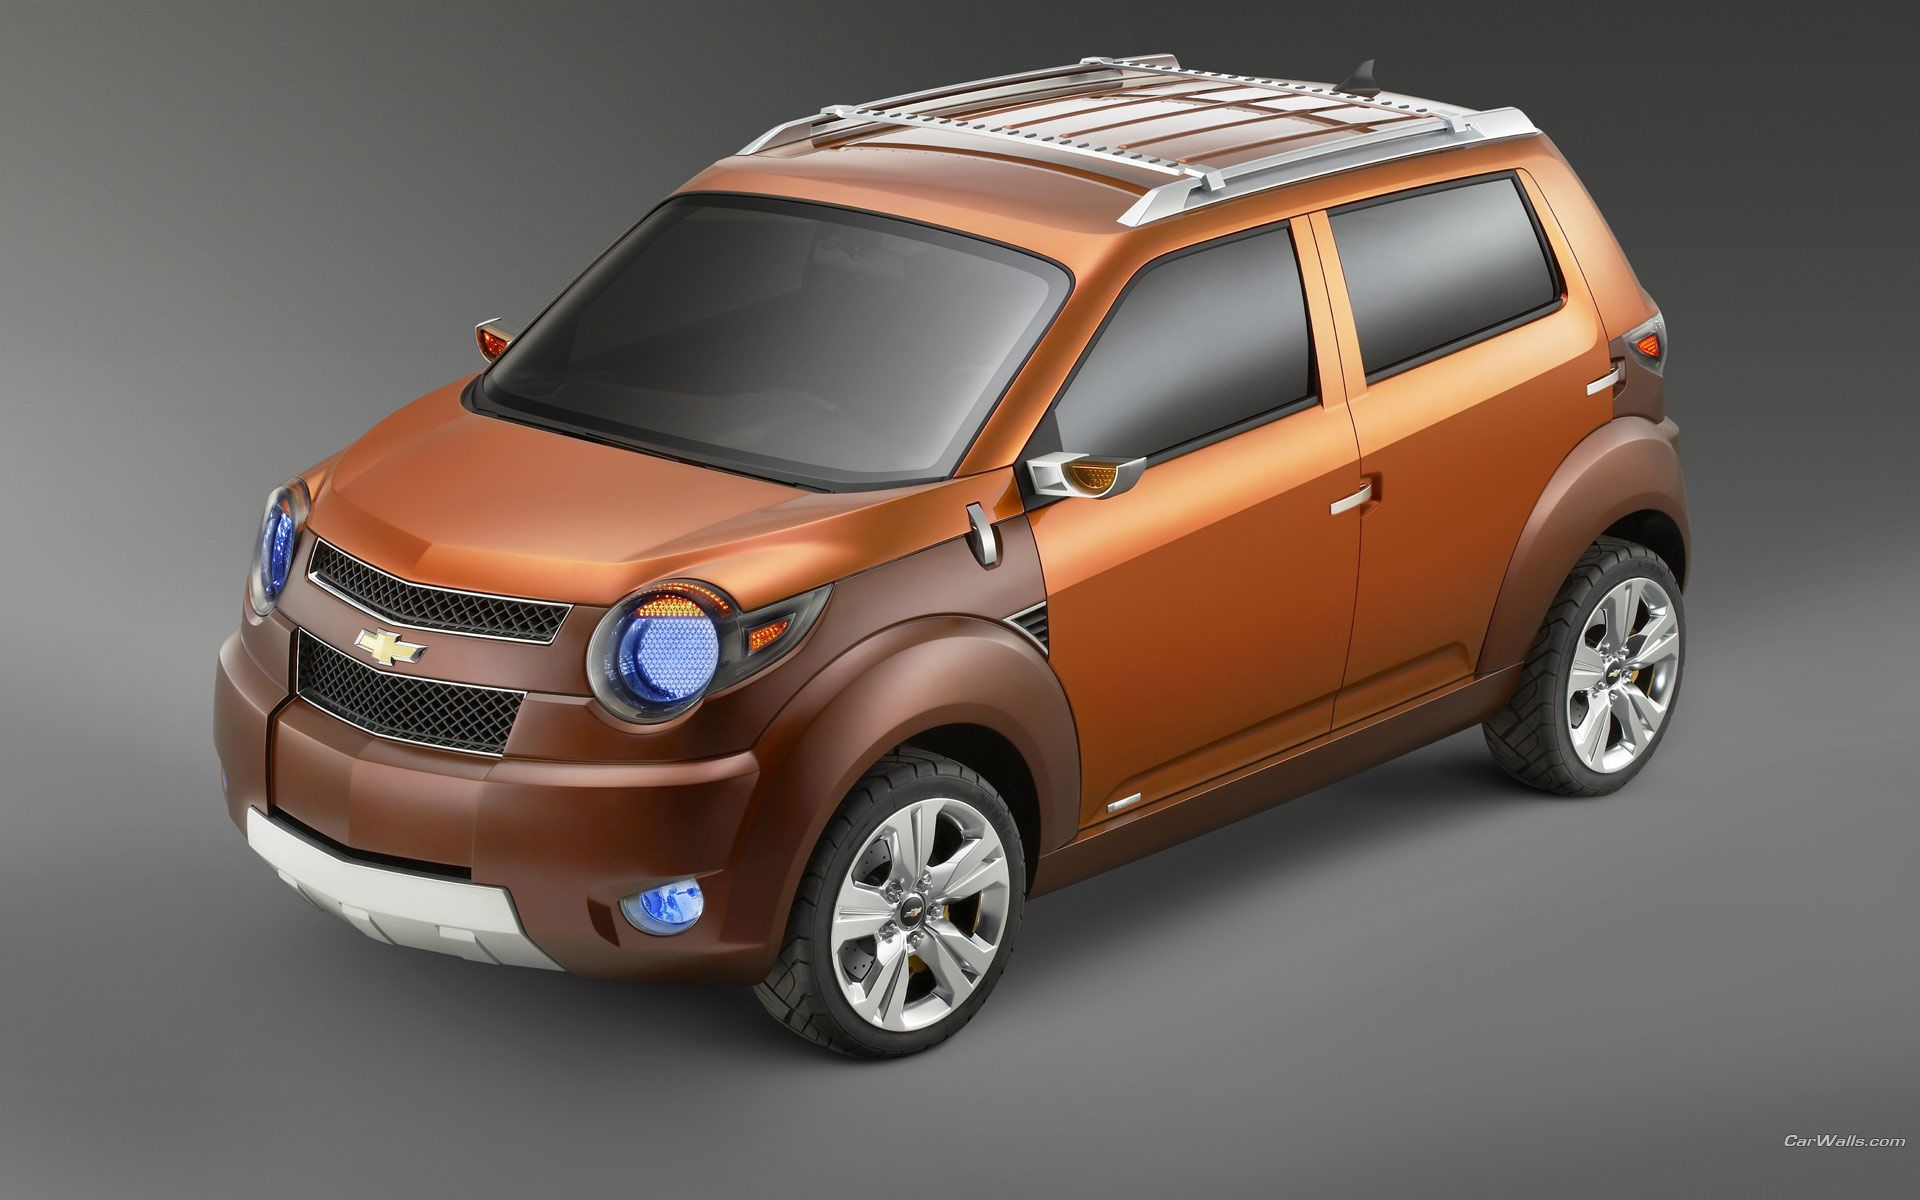 small t offer ss more news possibility engine won ltz cruze powerful a is chevy but chevrolet wont cars